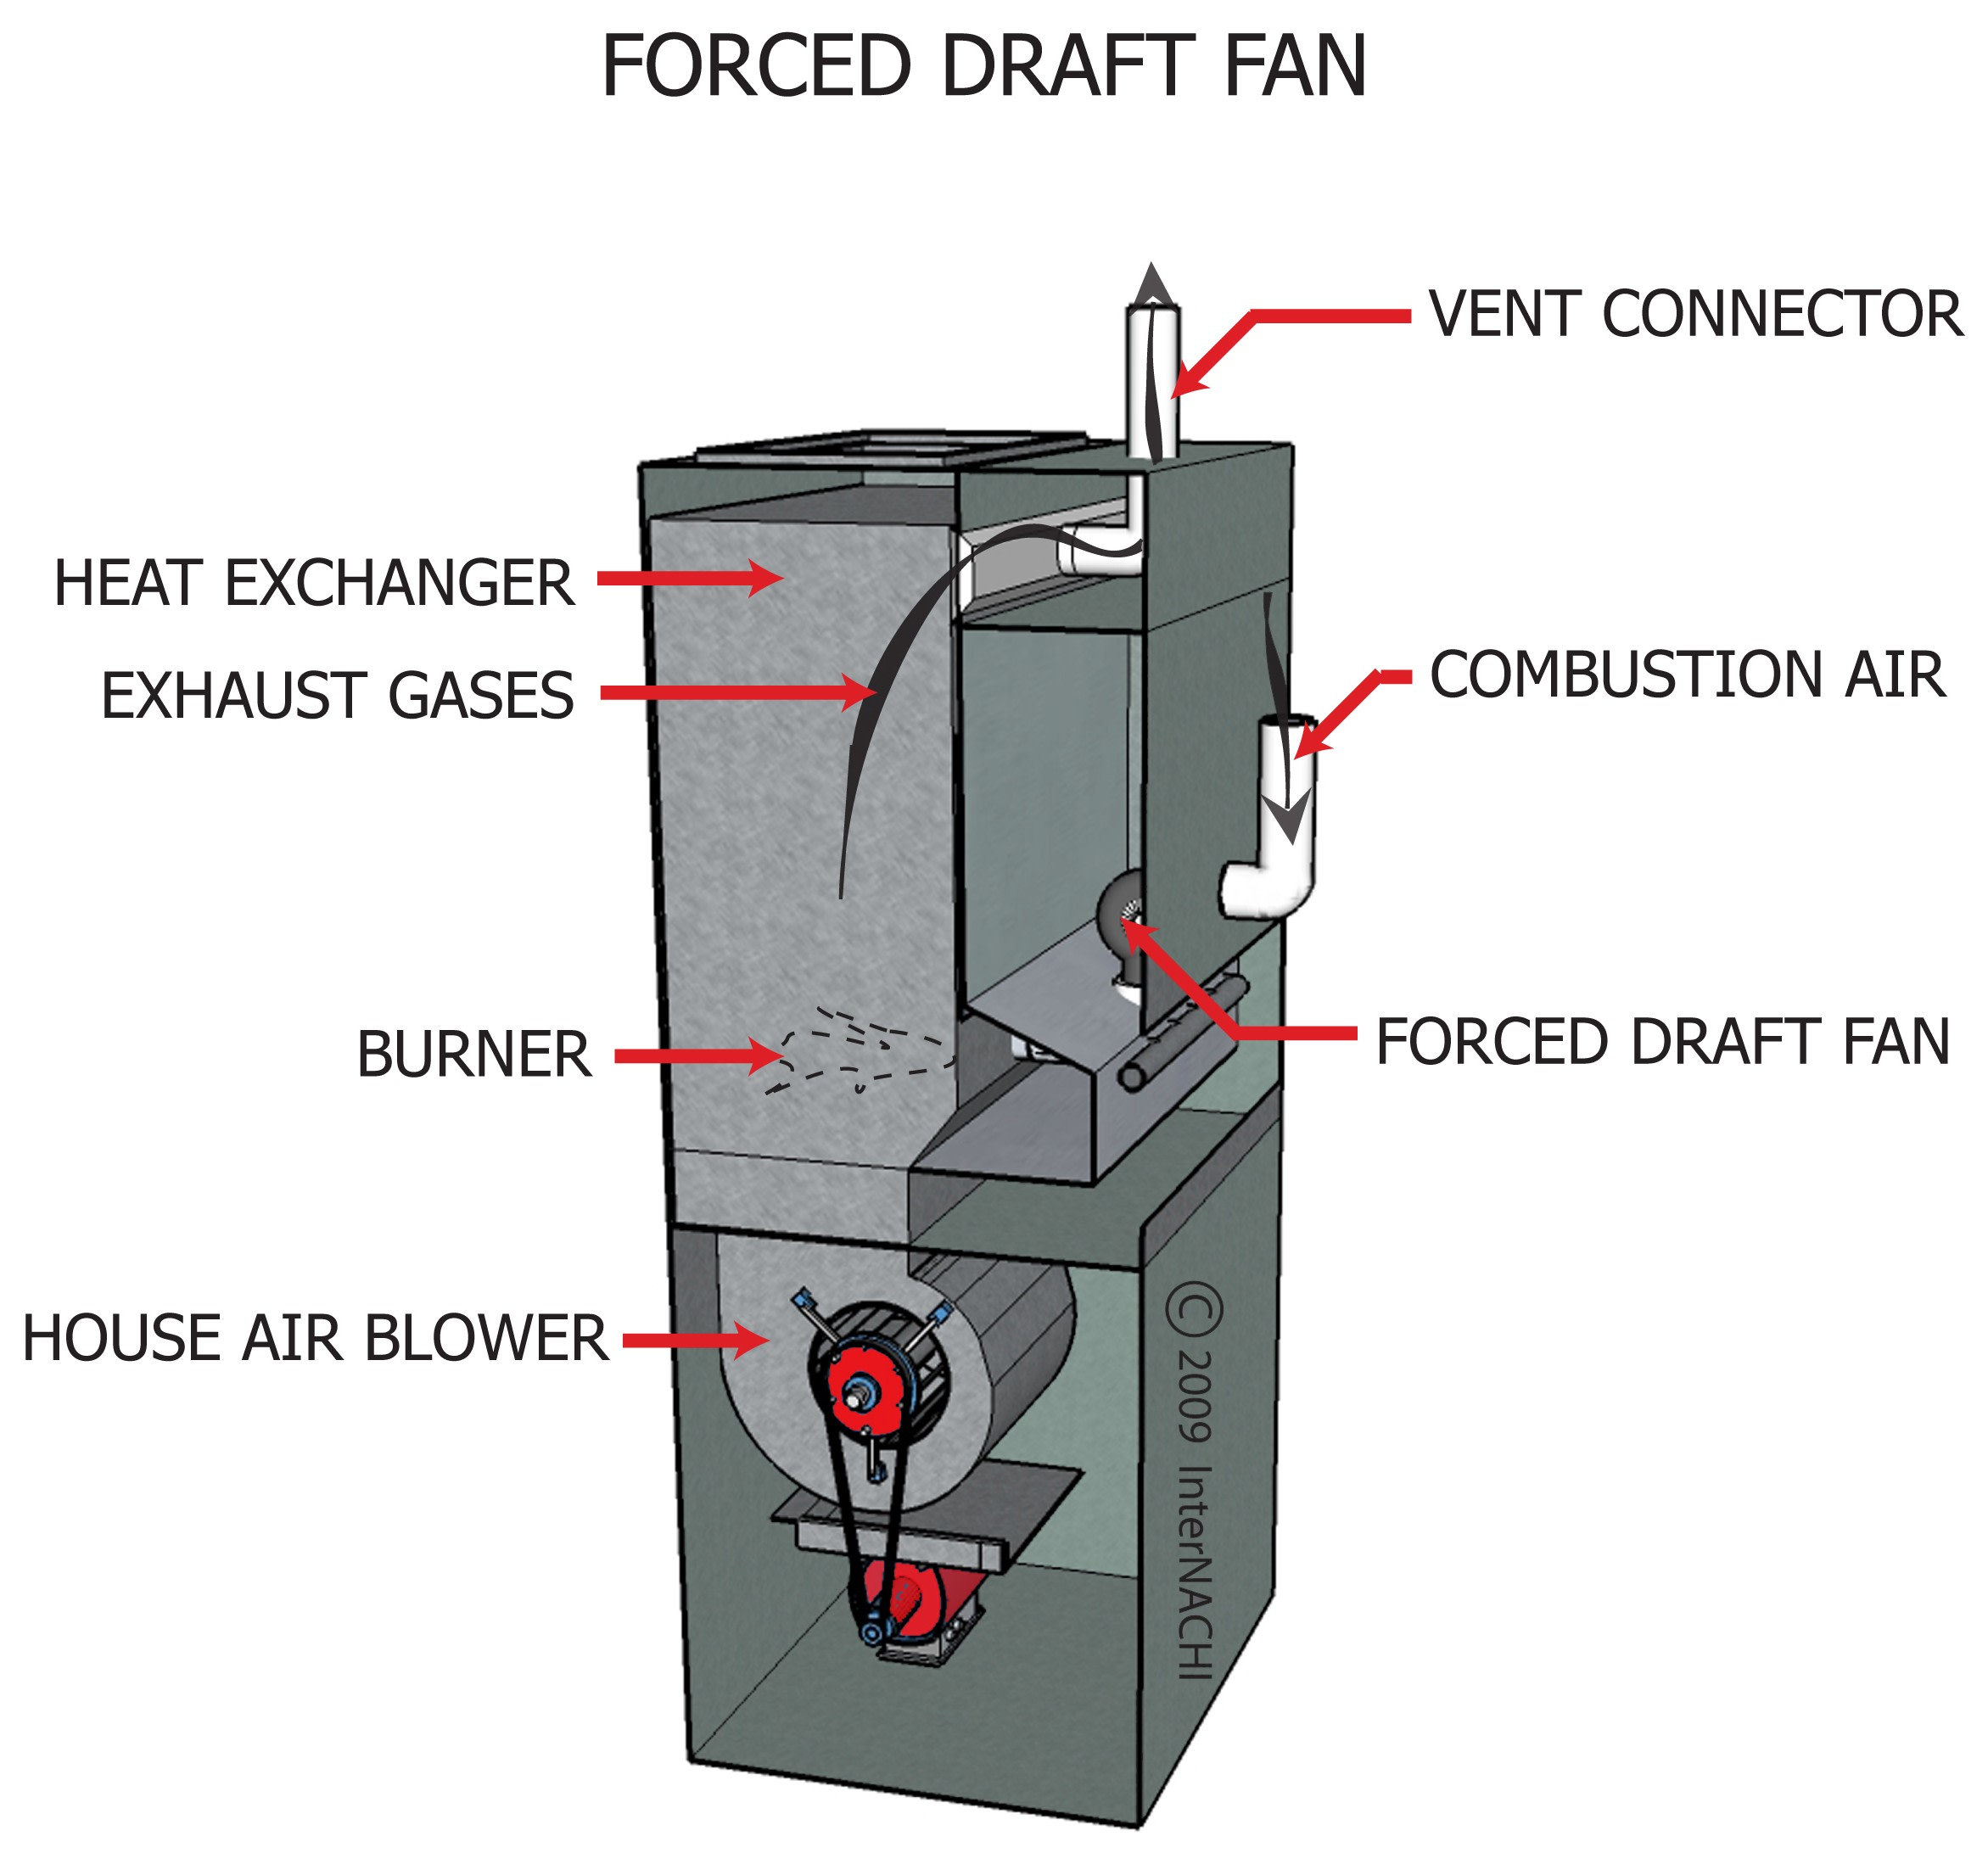 internachi inspection graphics library: hvac » heating » forced